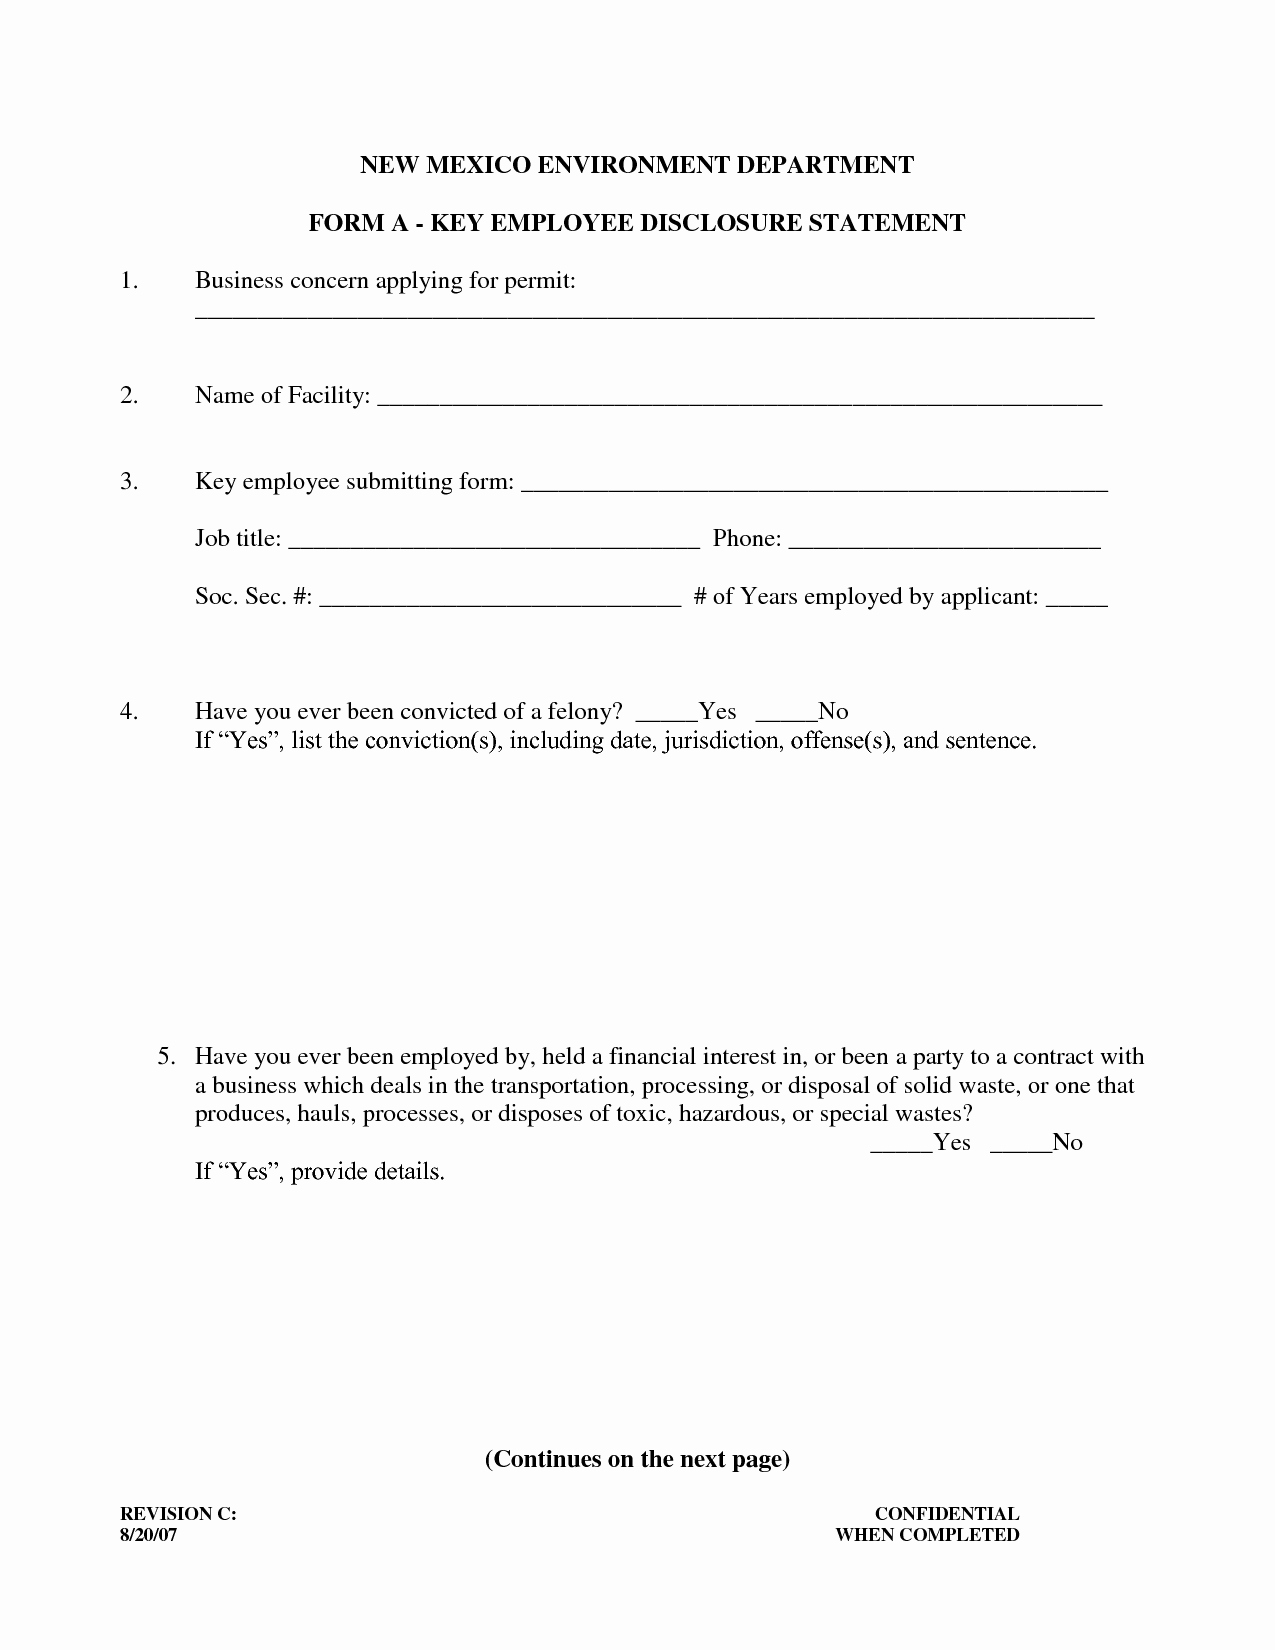 Employee Key Holder Agreement Template Luxury issuing Keys to Employees Related Keywords issuing Keys